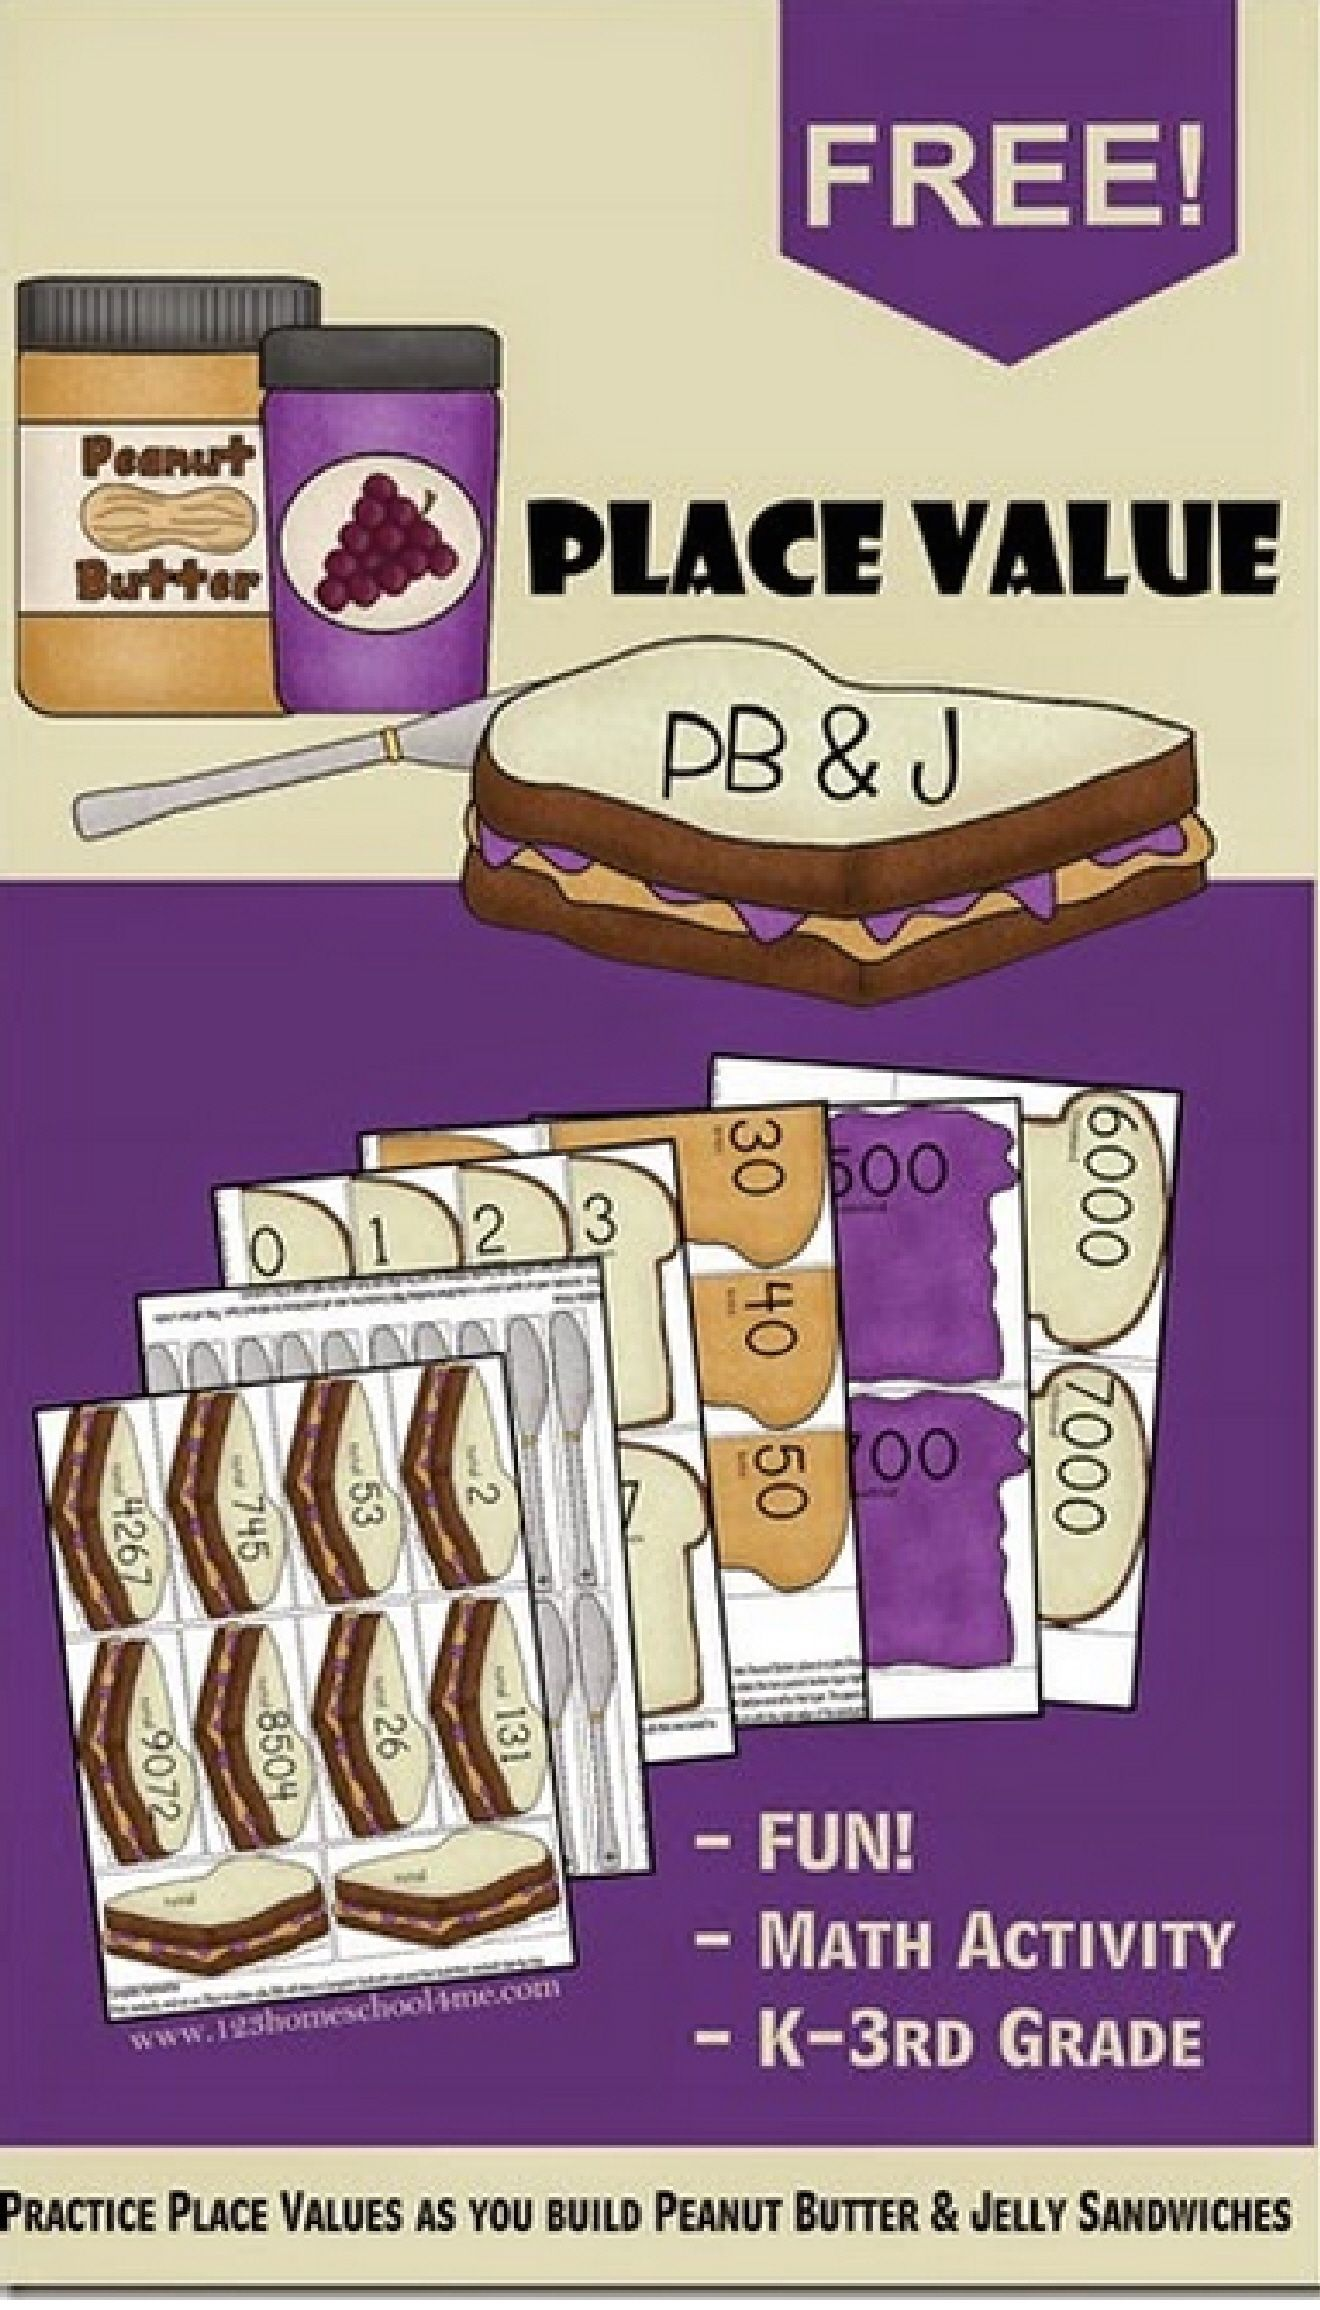 Free Peanut Butter Amp Jelly Sandwiches Place Value Activity